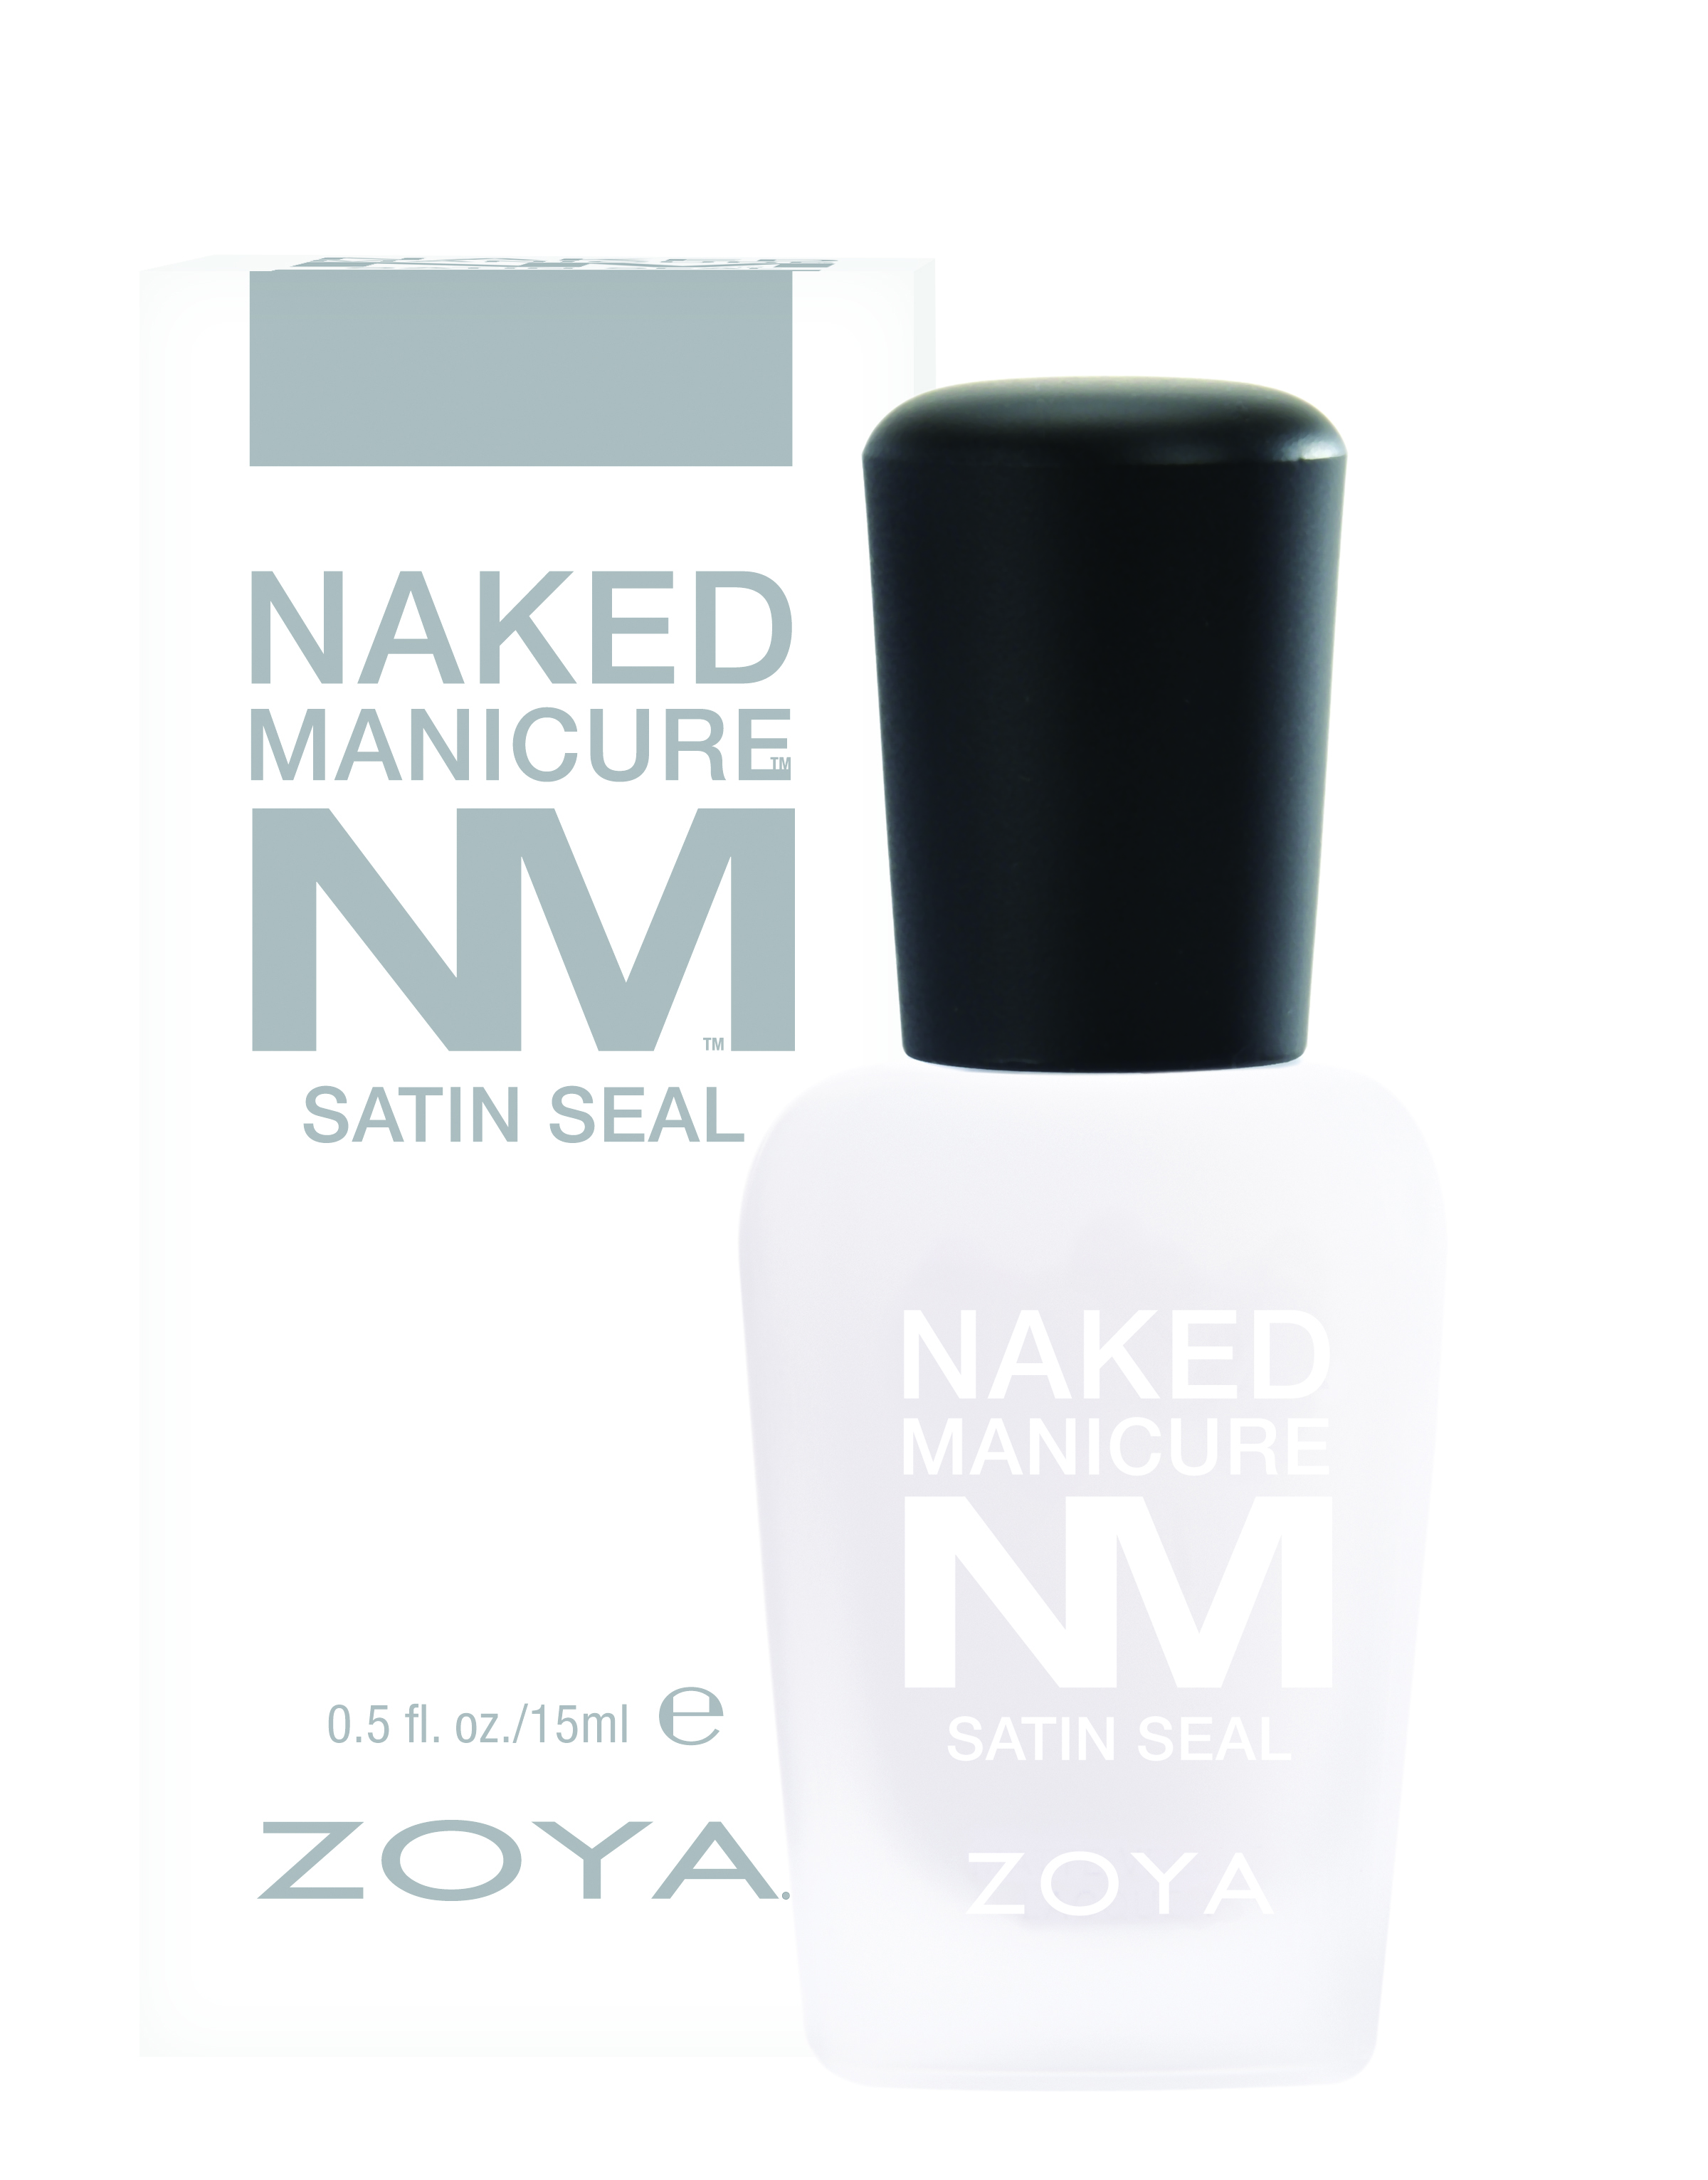 Naked Manicure Satin Seal product impression